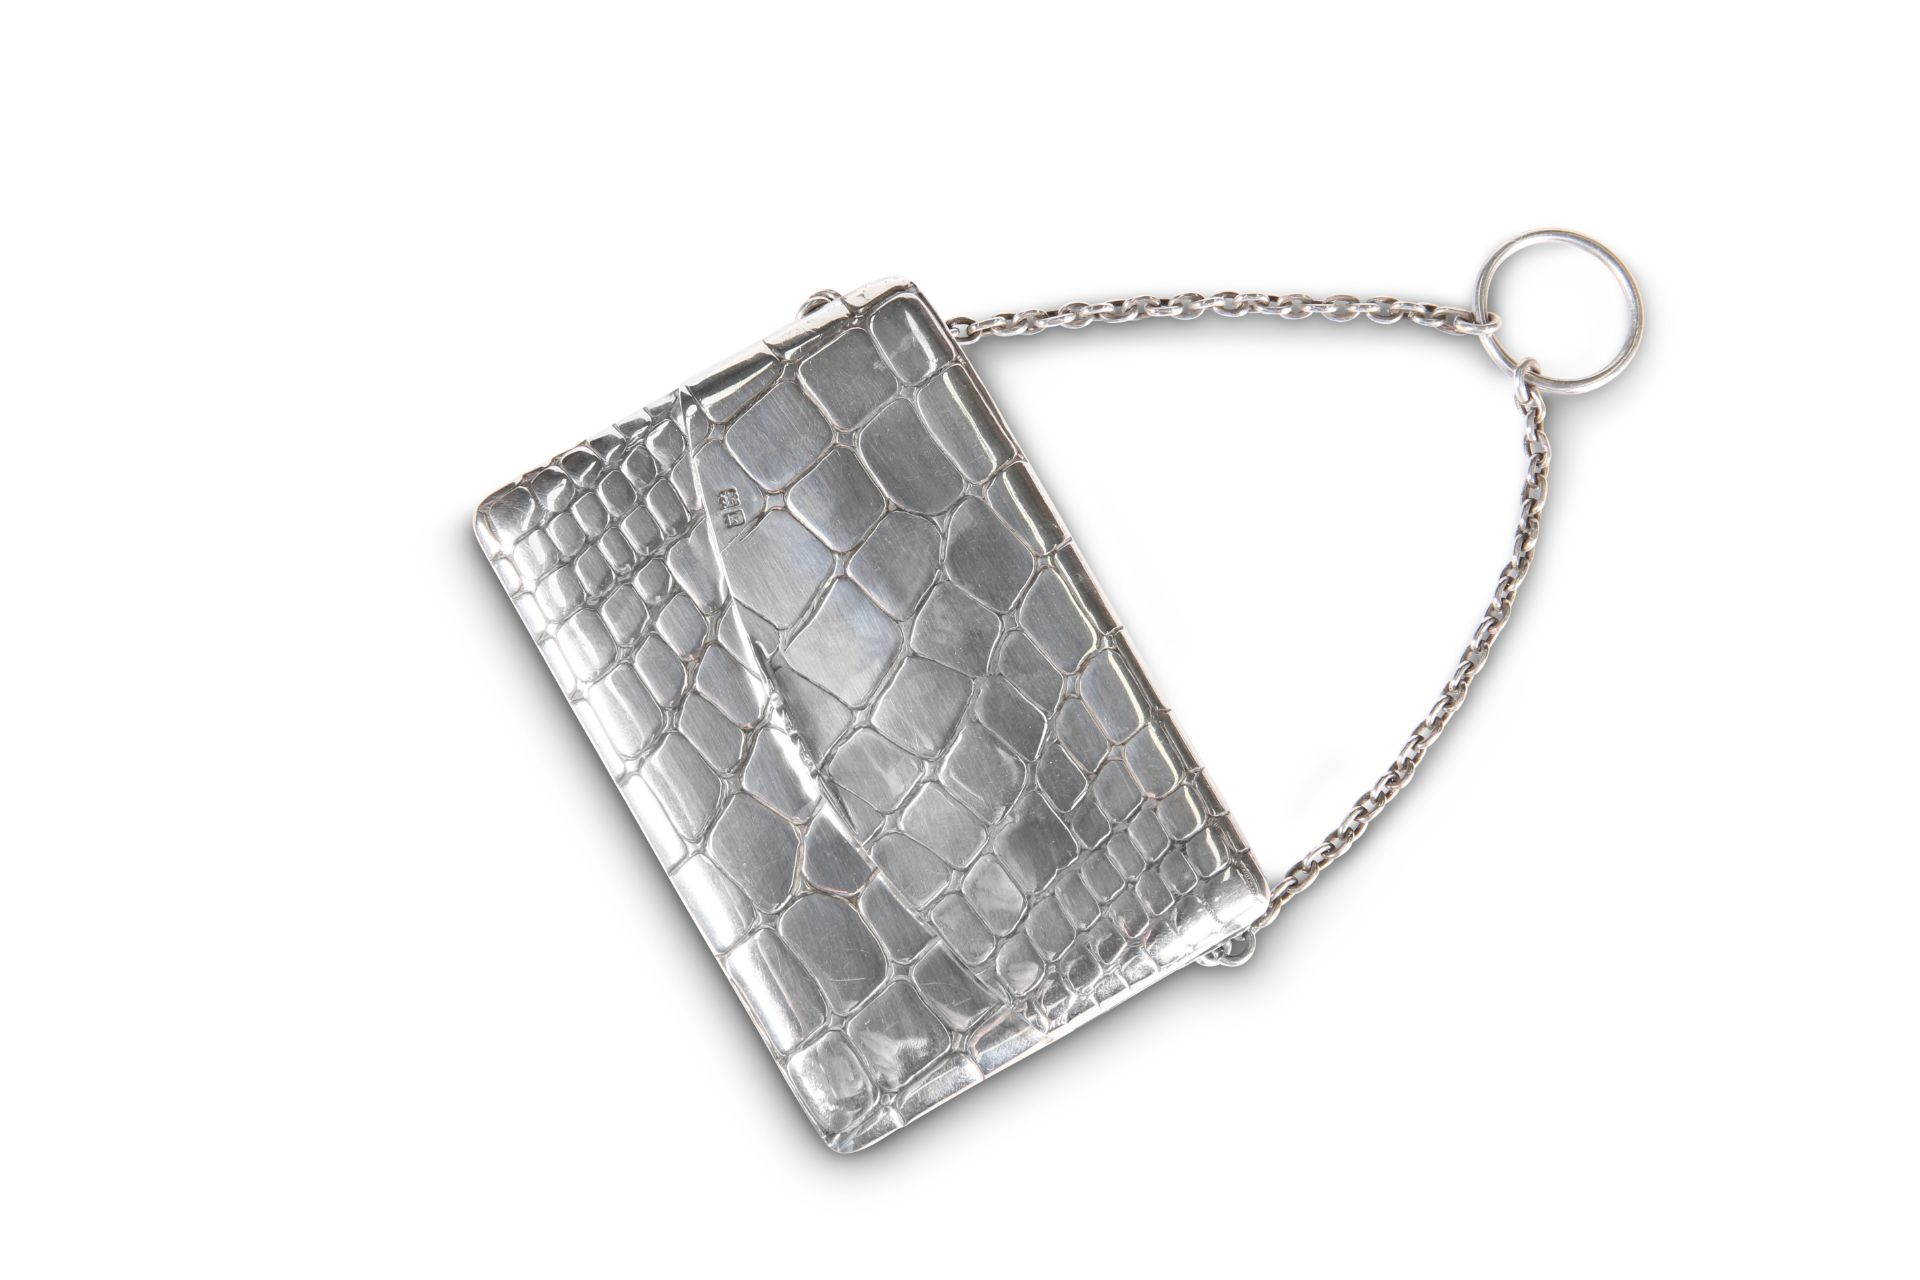 AN EDWARDIAN SILVER CARD CASE - Image 2 of 2